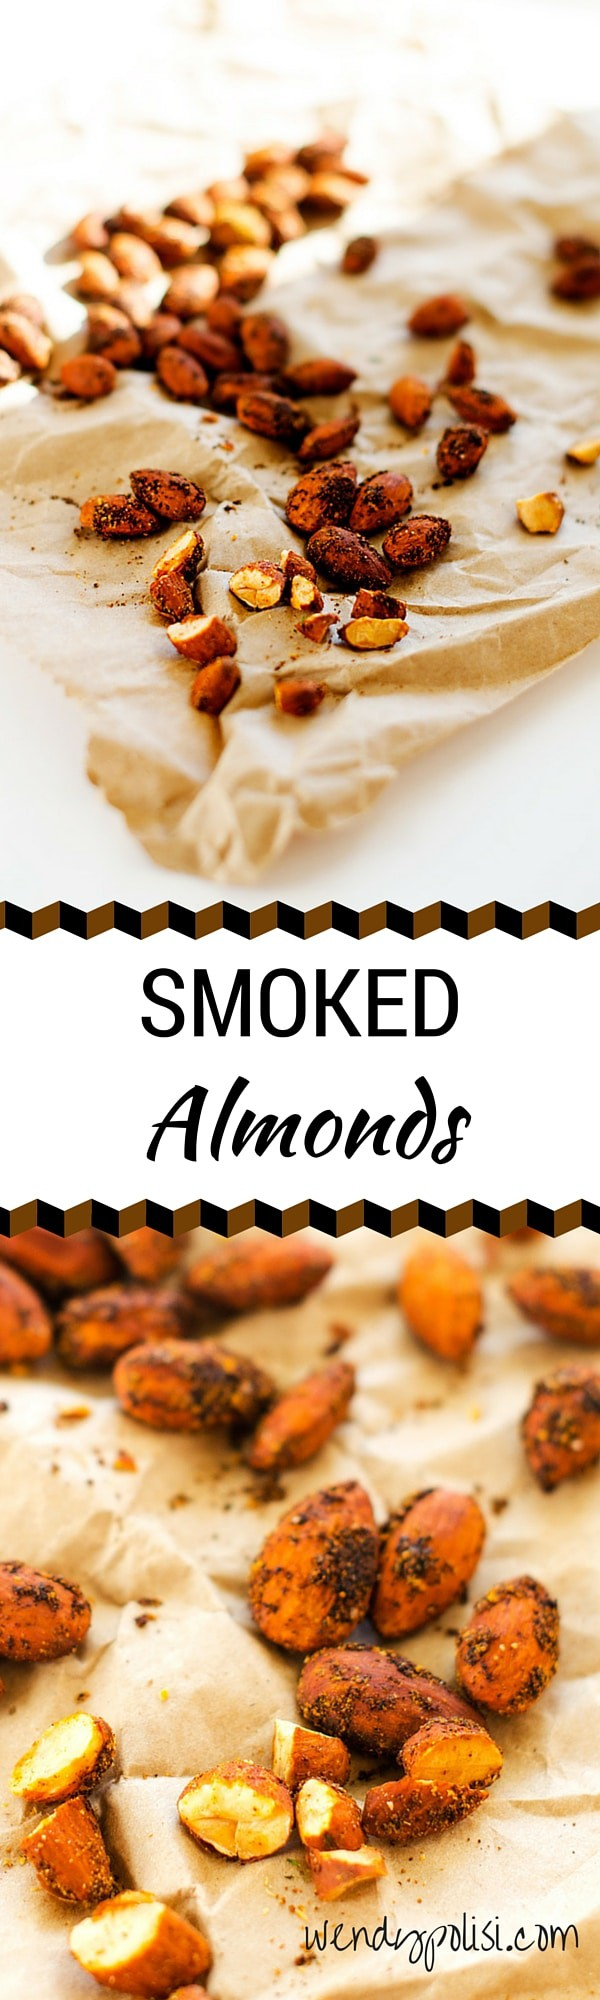 Smoked Almonds - These smoked almonds will rock your world! Hubby called them bacon almonds. Perfect on a salad, in a wrap or by themselves. - WendyPolisi.com